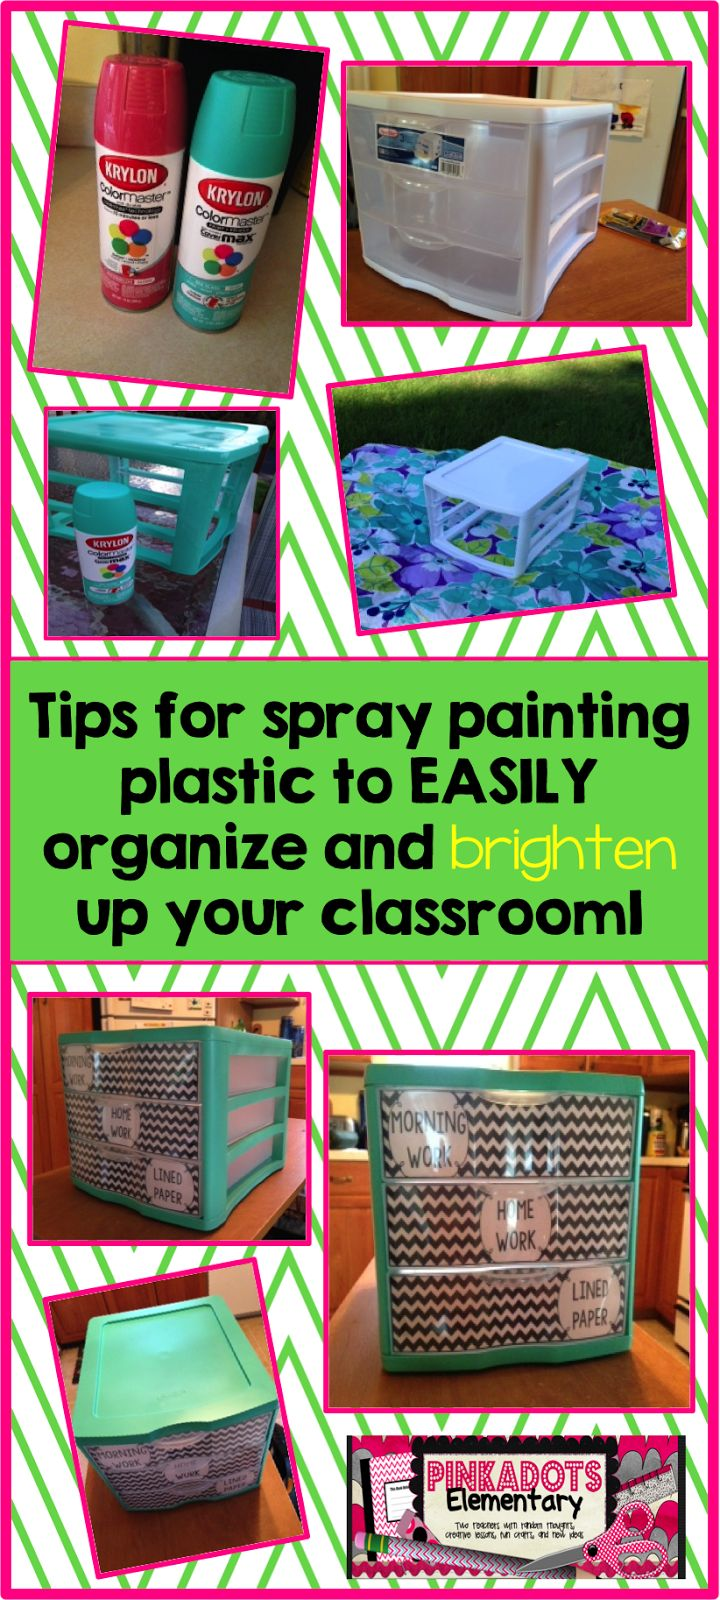 25+ unique Spray painting plastic ideas on Pinterest | Decorating ...